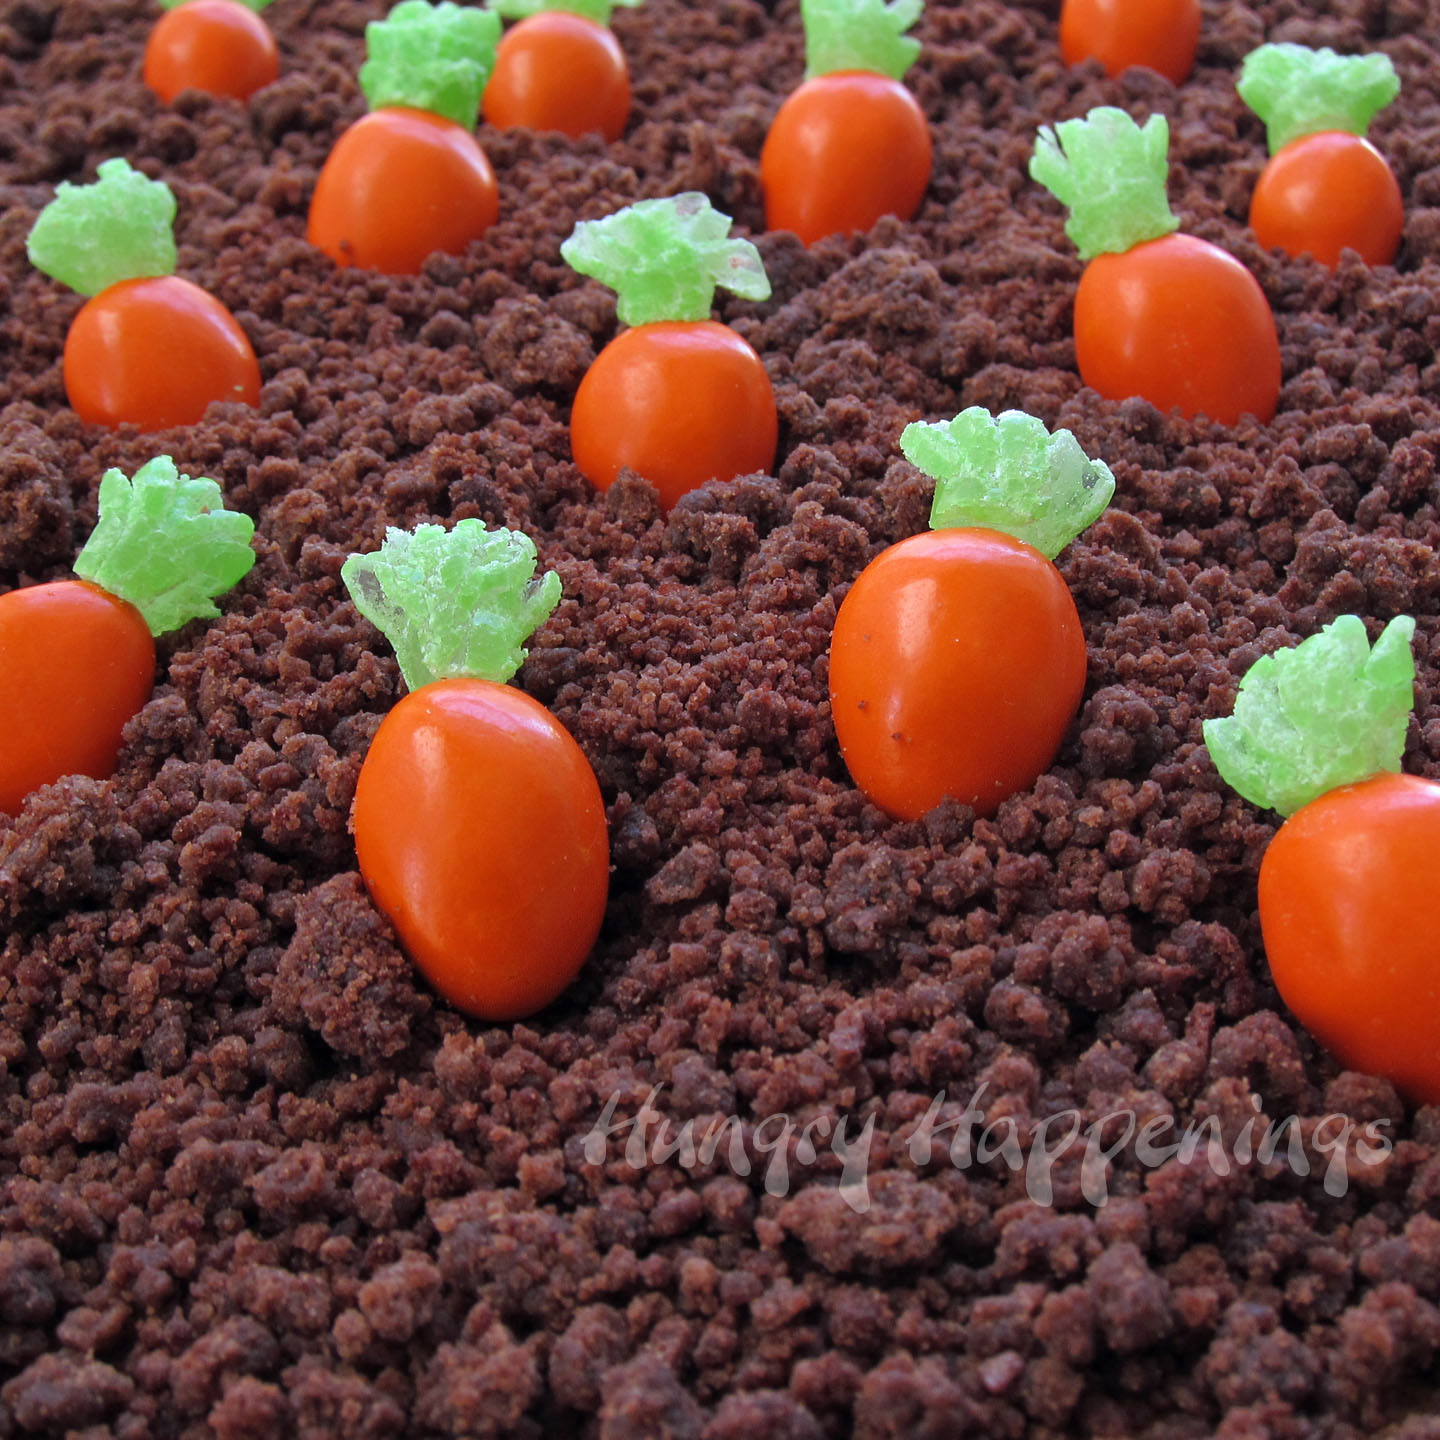 Almond mm candy carrots hungry happenings easter recipes the easter bunny found the perfect treats to stick into your kids easter baskets these almond mm candy carrots are simple to make and great gifts to hand negle Image collections